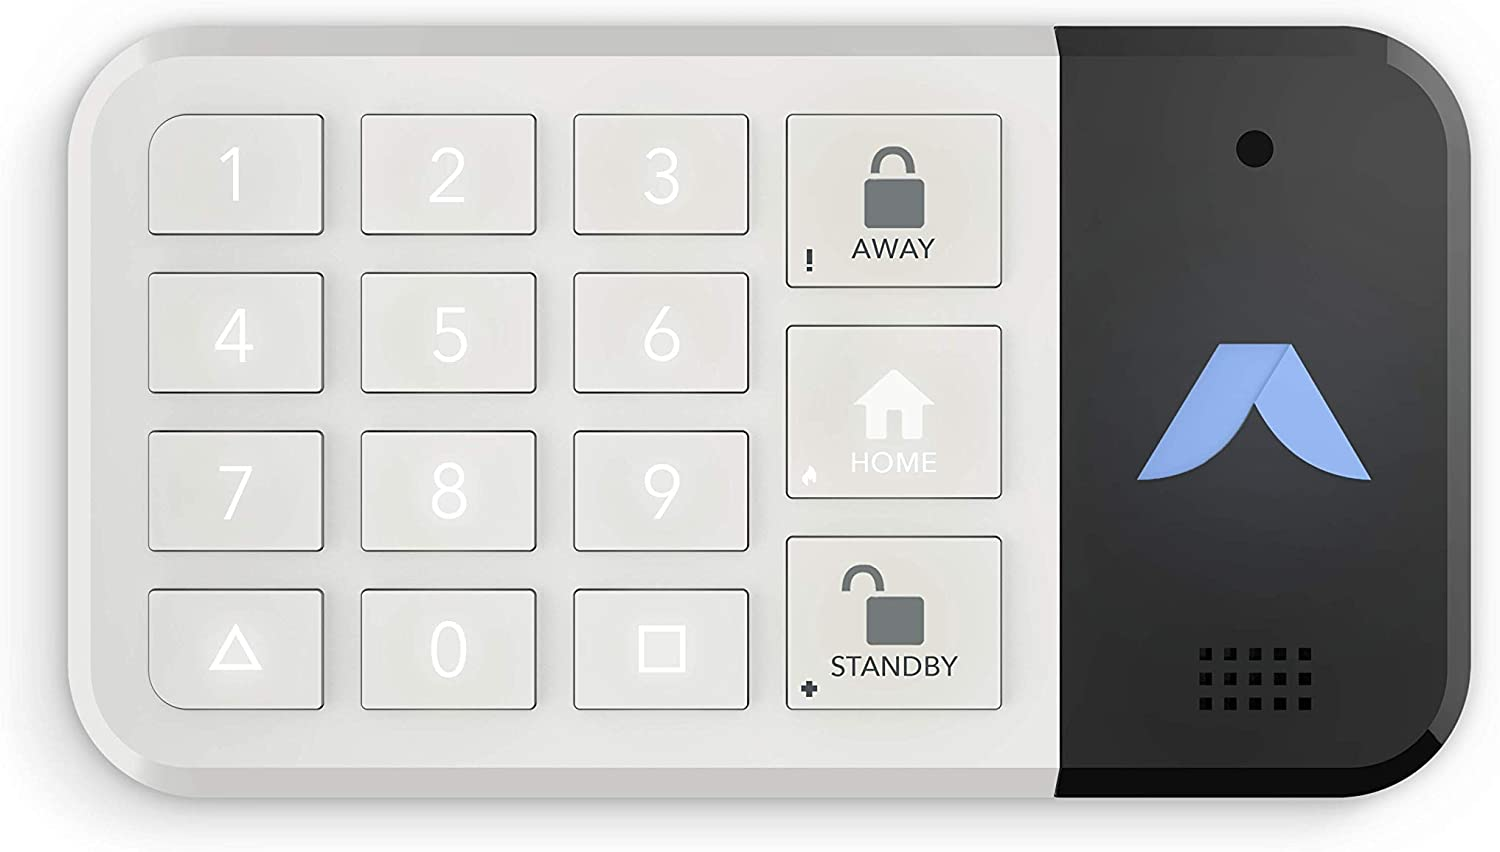 abode Keypad 2 | Arm & Disarm Your System | Detect Motion | Get Your System Status